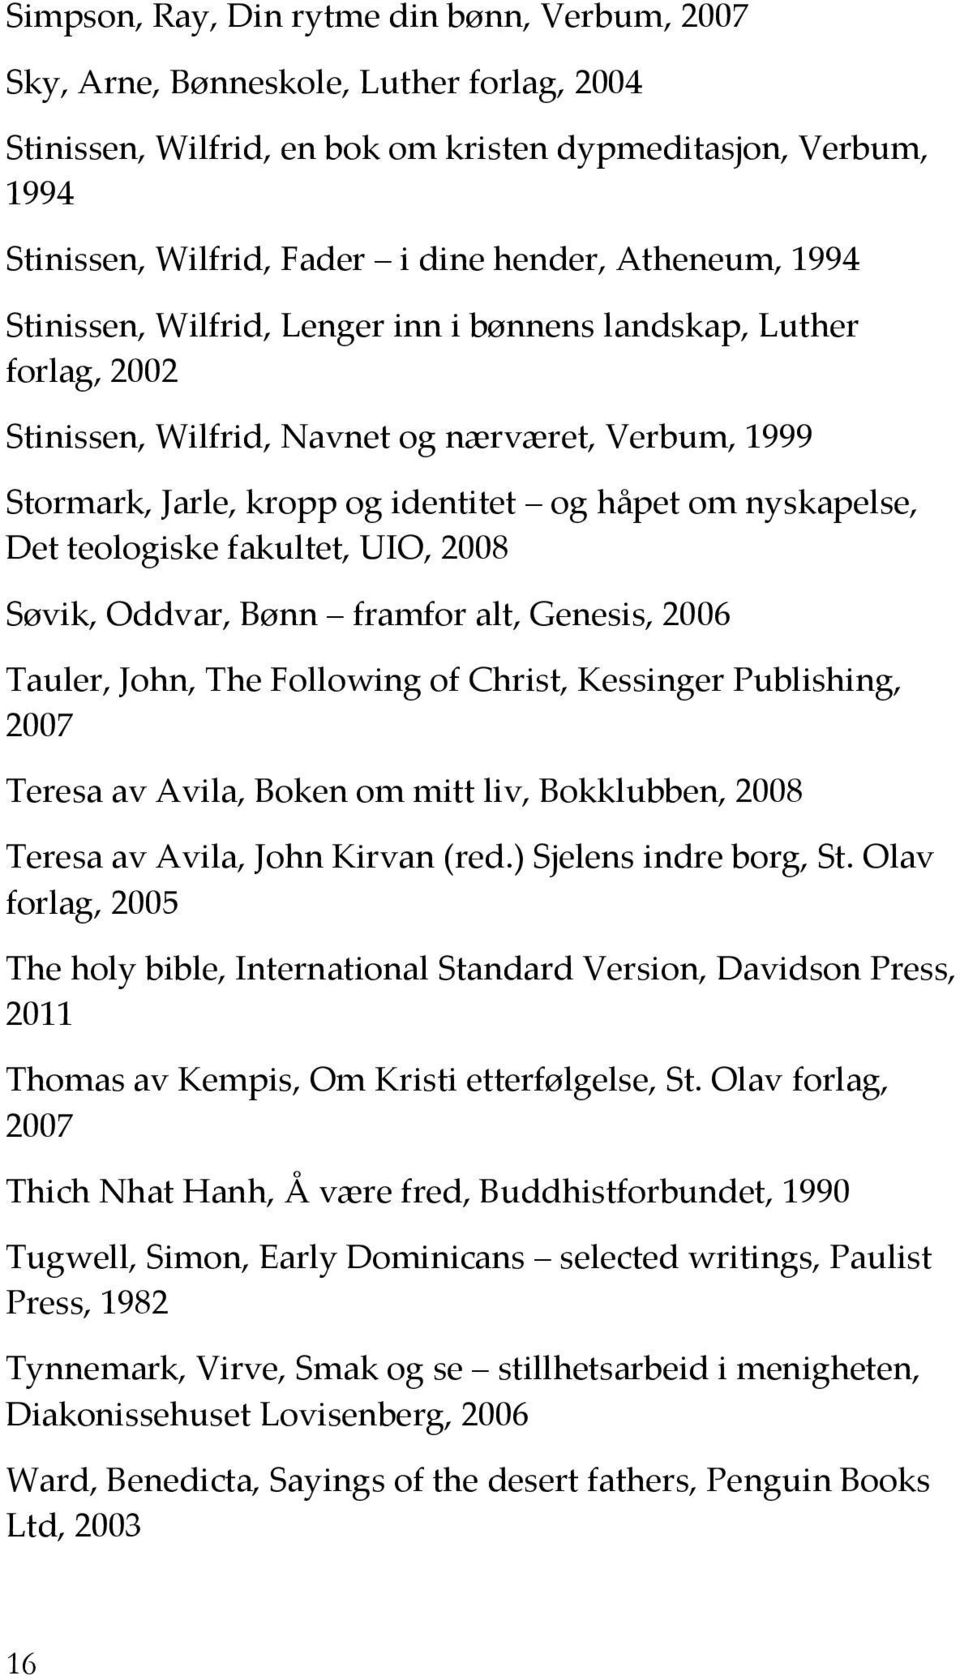 Det teologiske fakultet, UIO, 2008 Søvik, Oddvar, Bønn framfor alt, Genesis, 2006 Tauler, John, The Following of Christ, Kessinger Publishing, 2007 Teresa av Avila, Boken om mitt liv, Bokklubben,